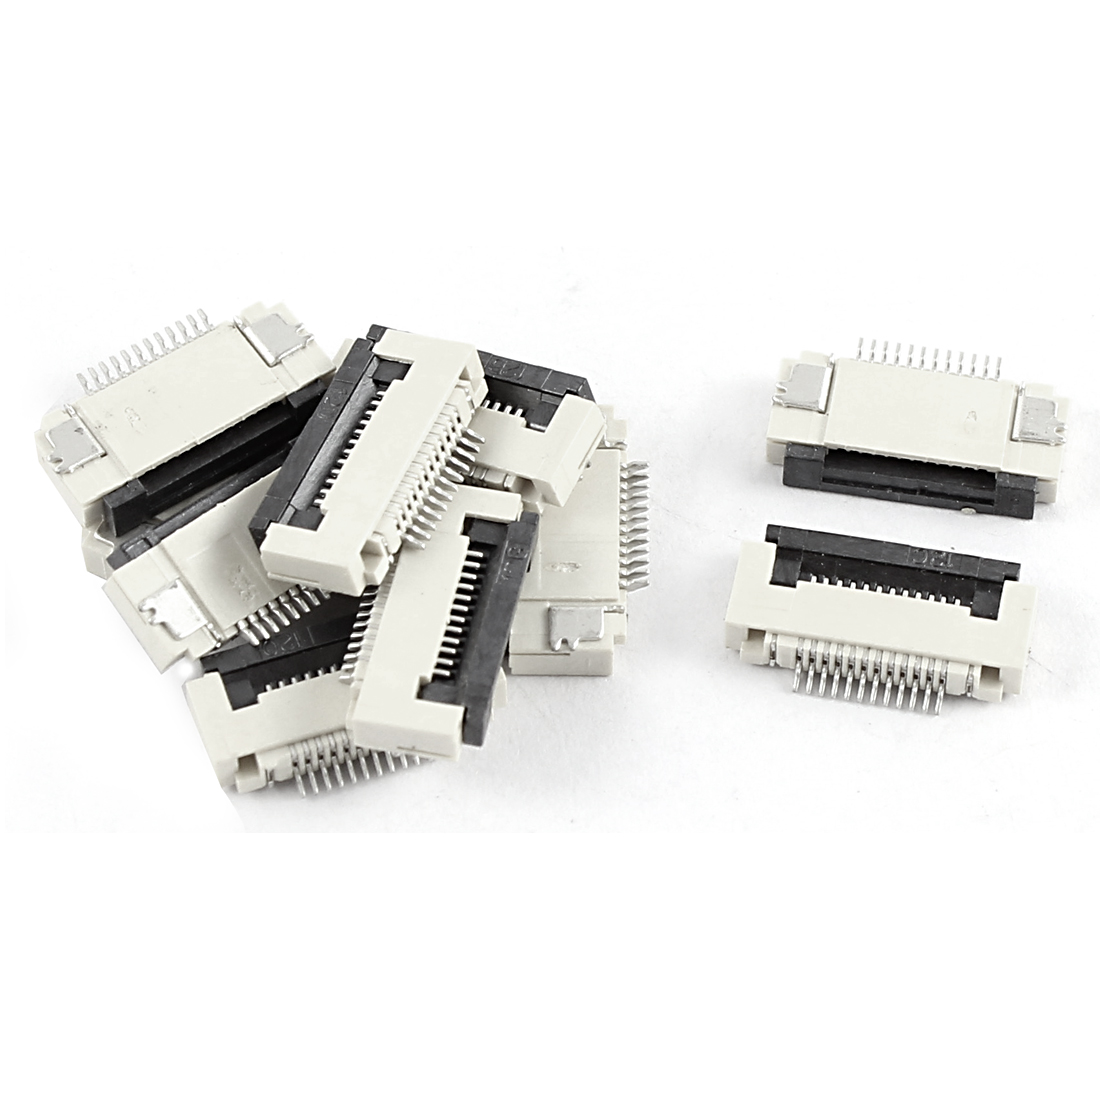 10 Pcs Clamshell Type Bottom Port 12Pin 0.5mm Pitch FFC FPC Sockets Connector